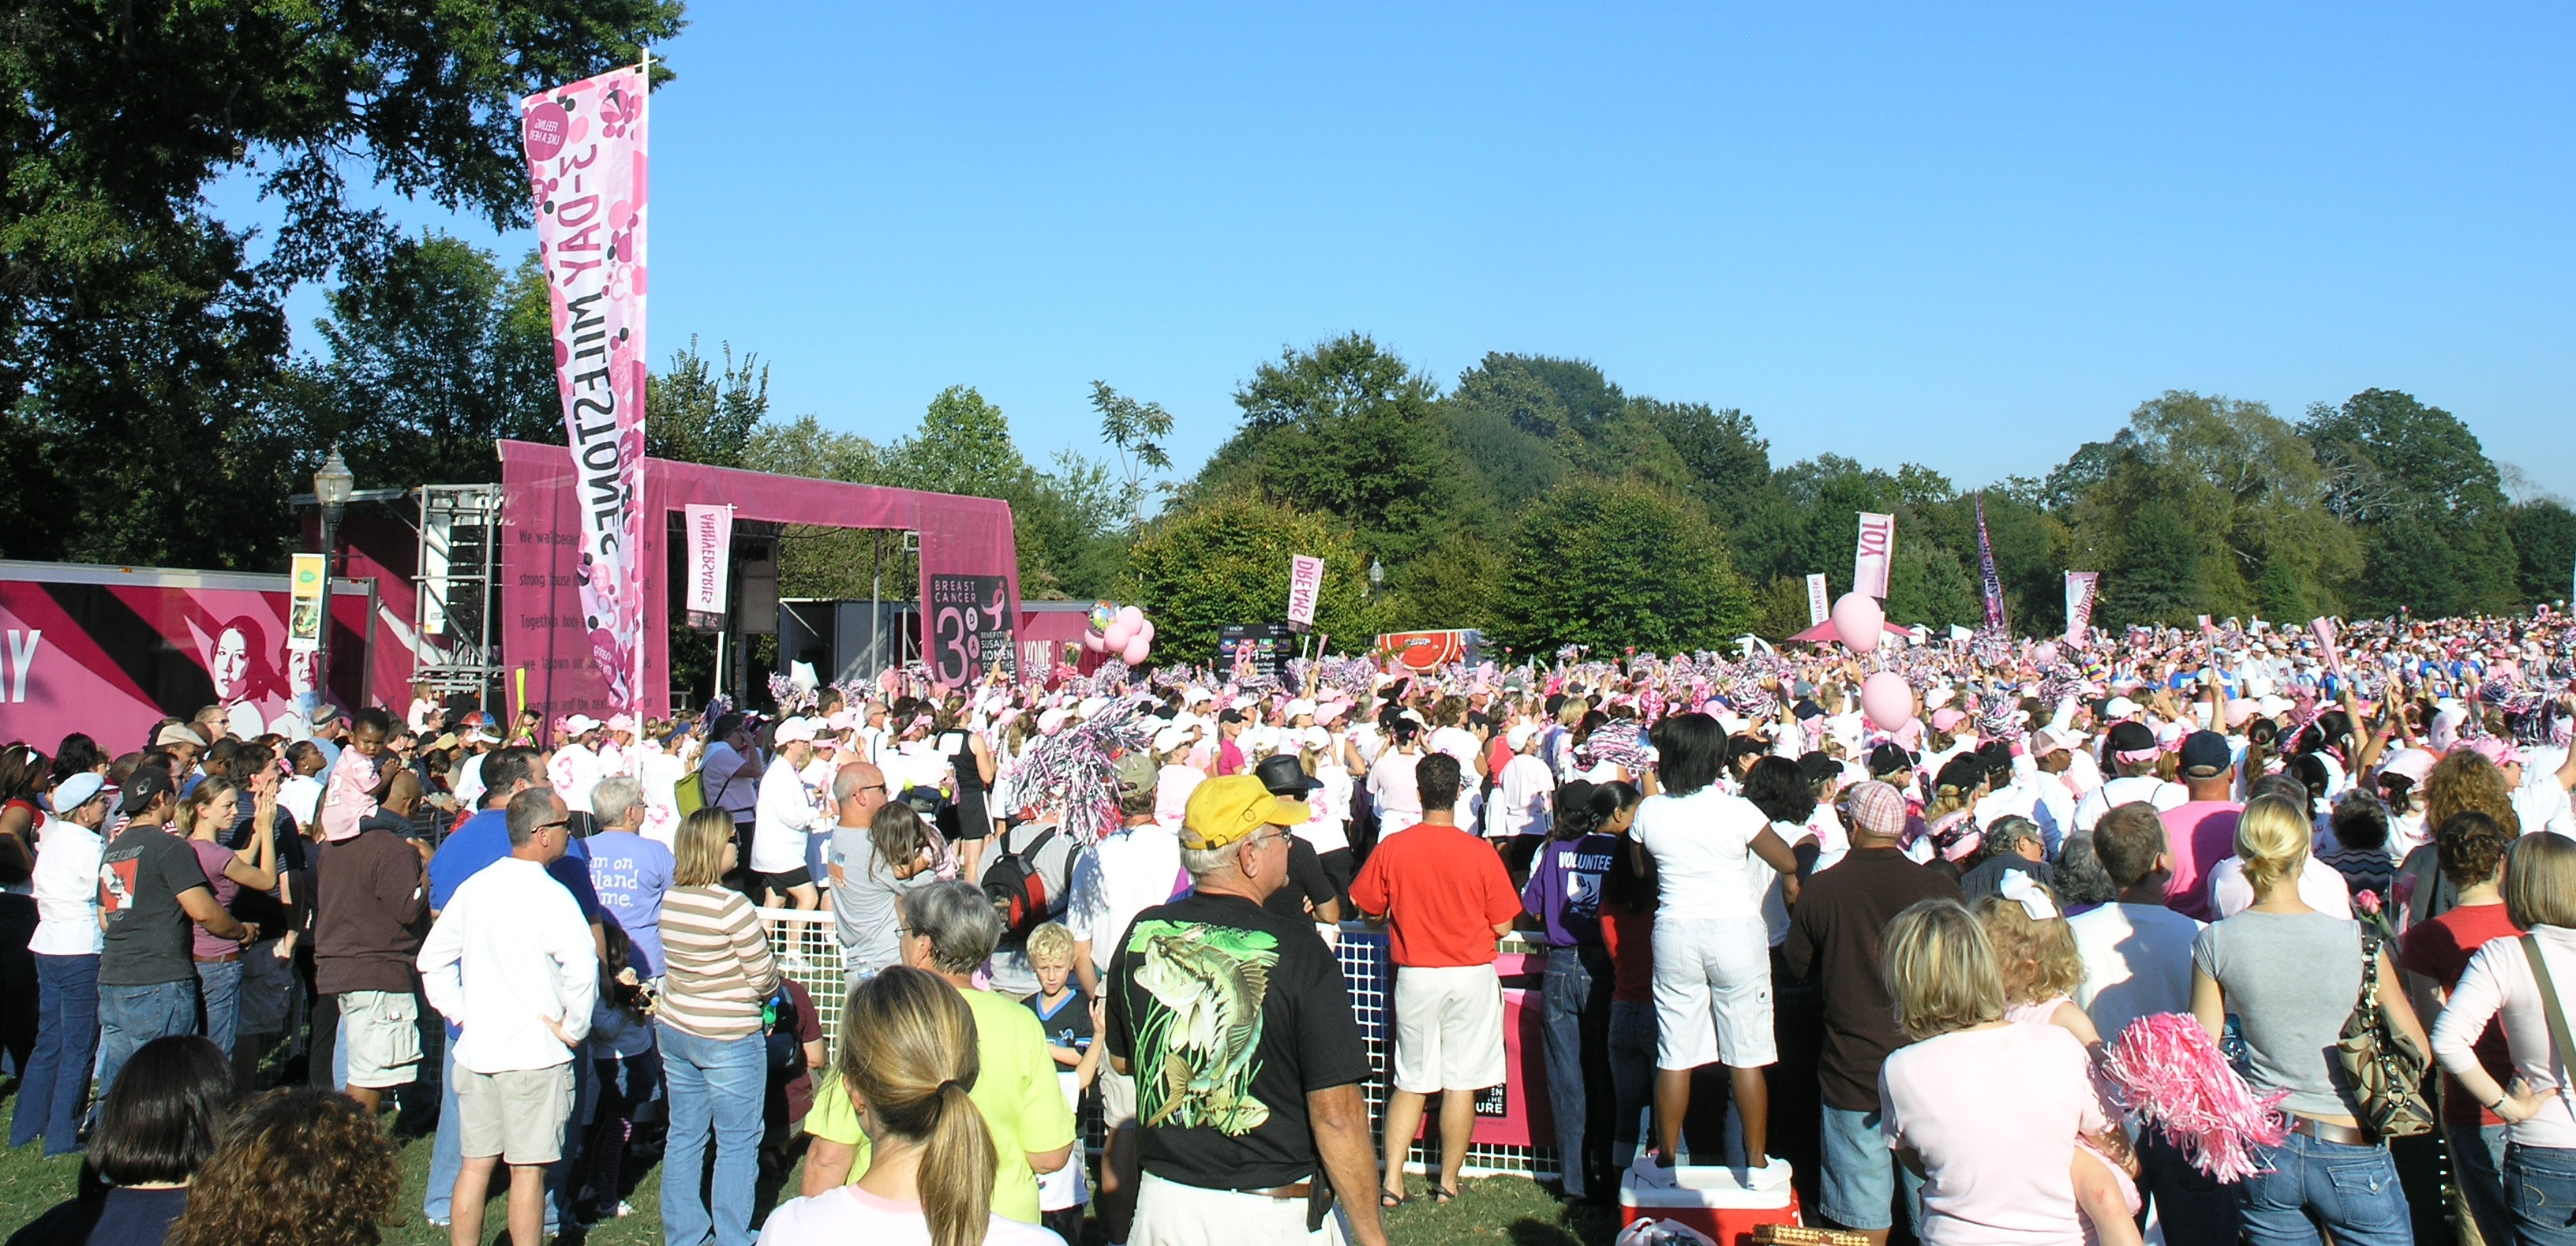 Susan G Komen 3-Day for the Cure - Wikipedia